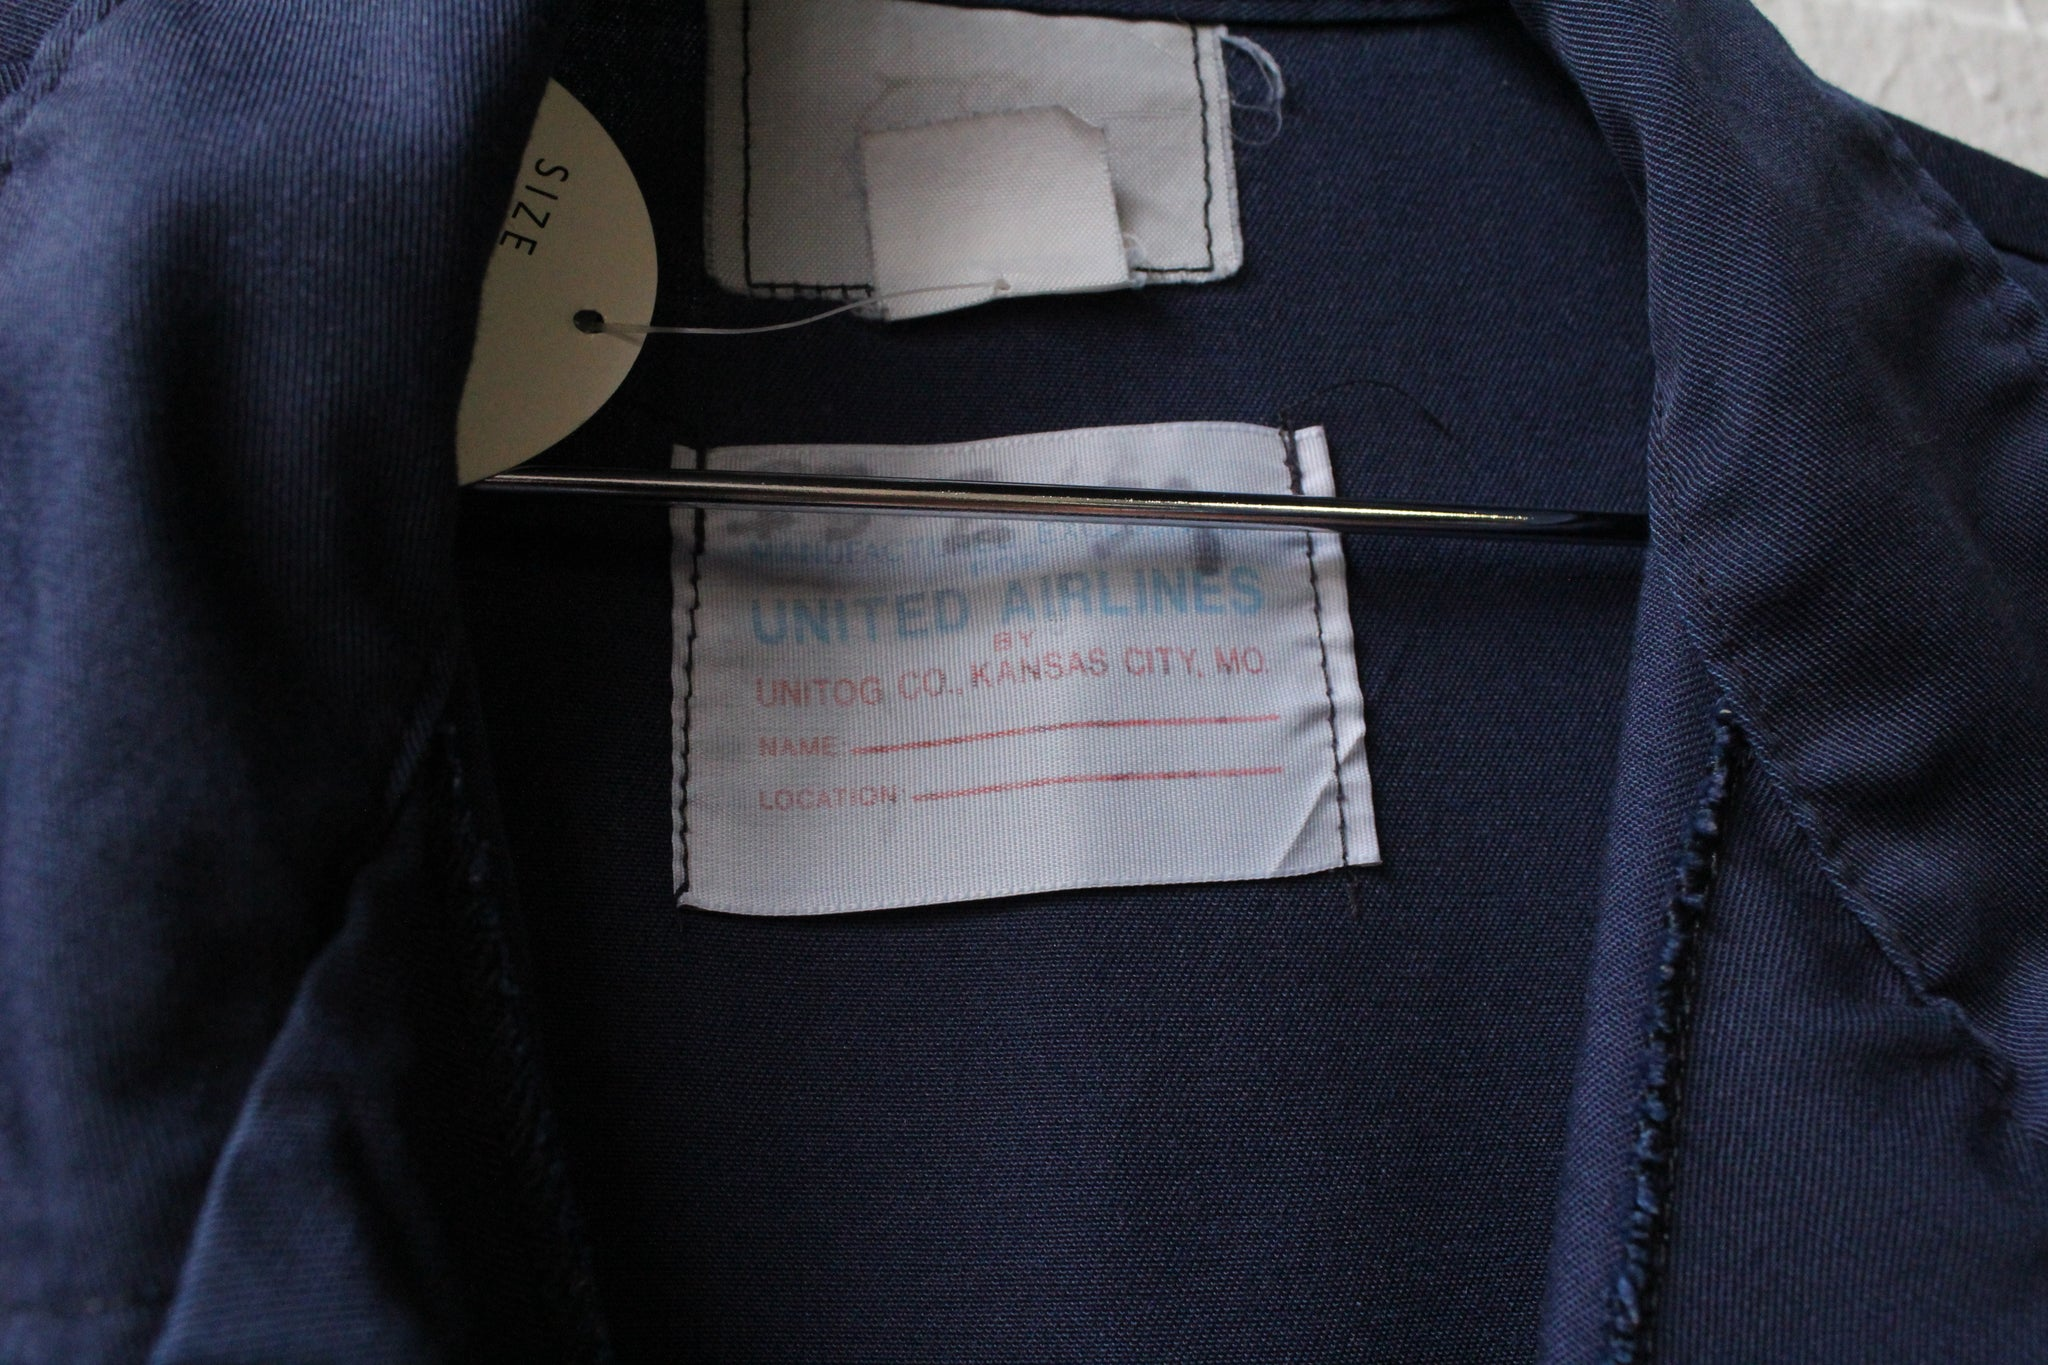 United Airlines Mechanic Jumpsuit